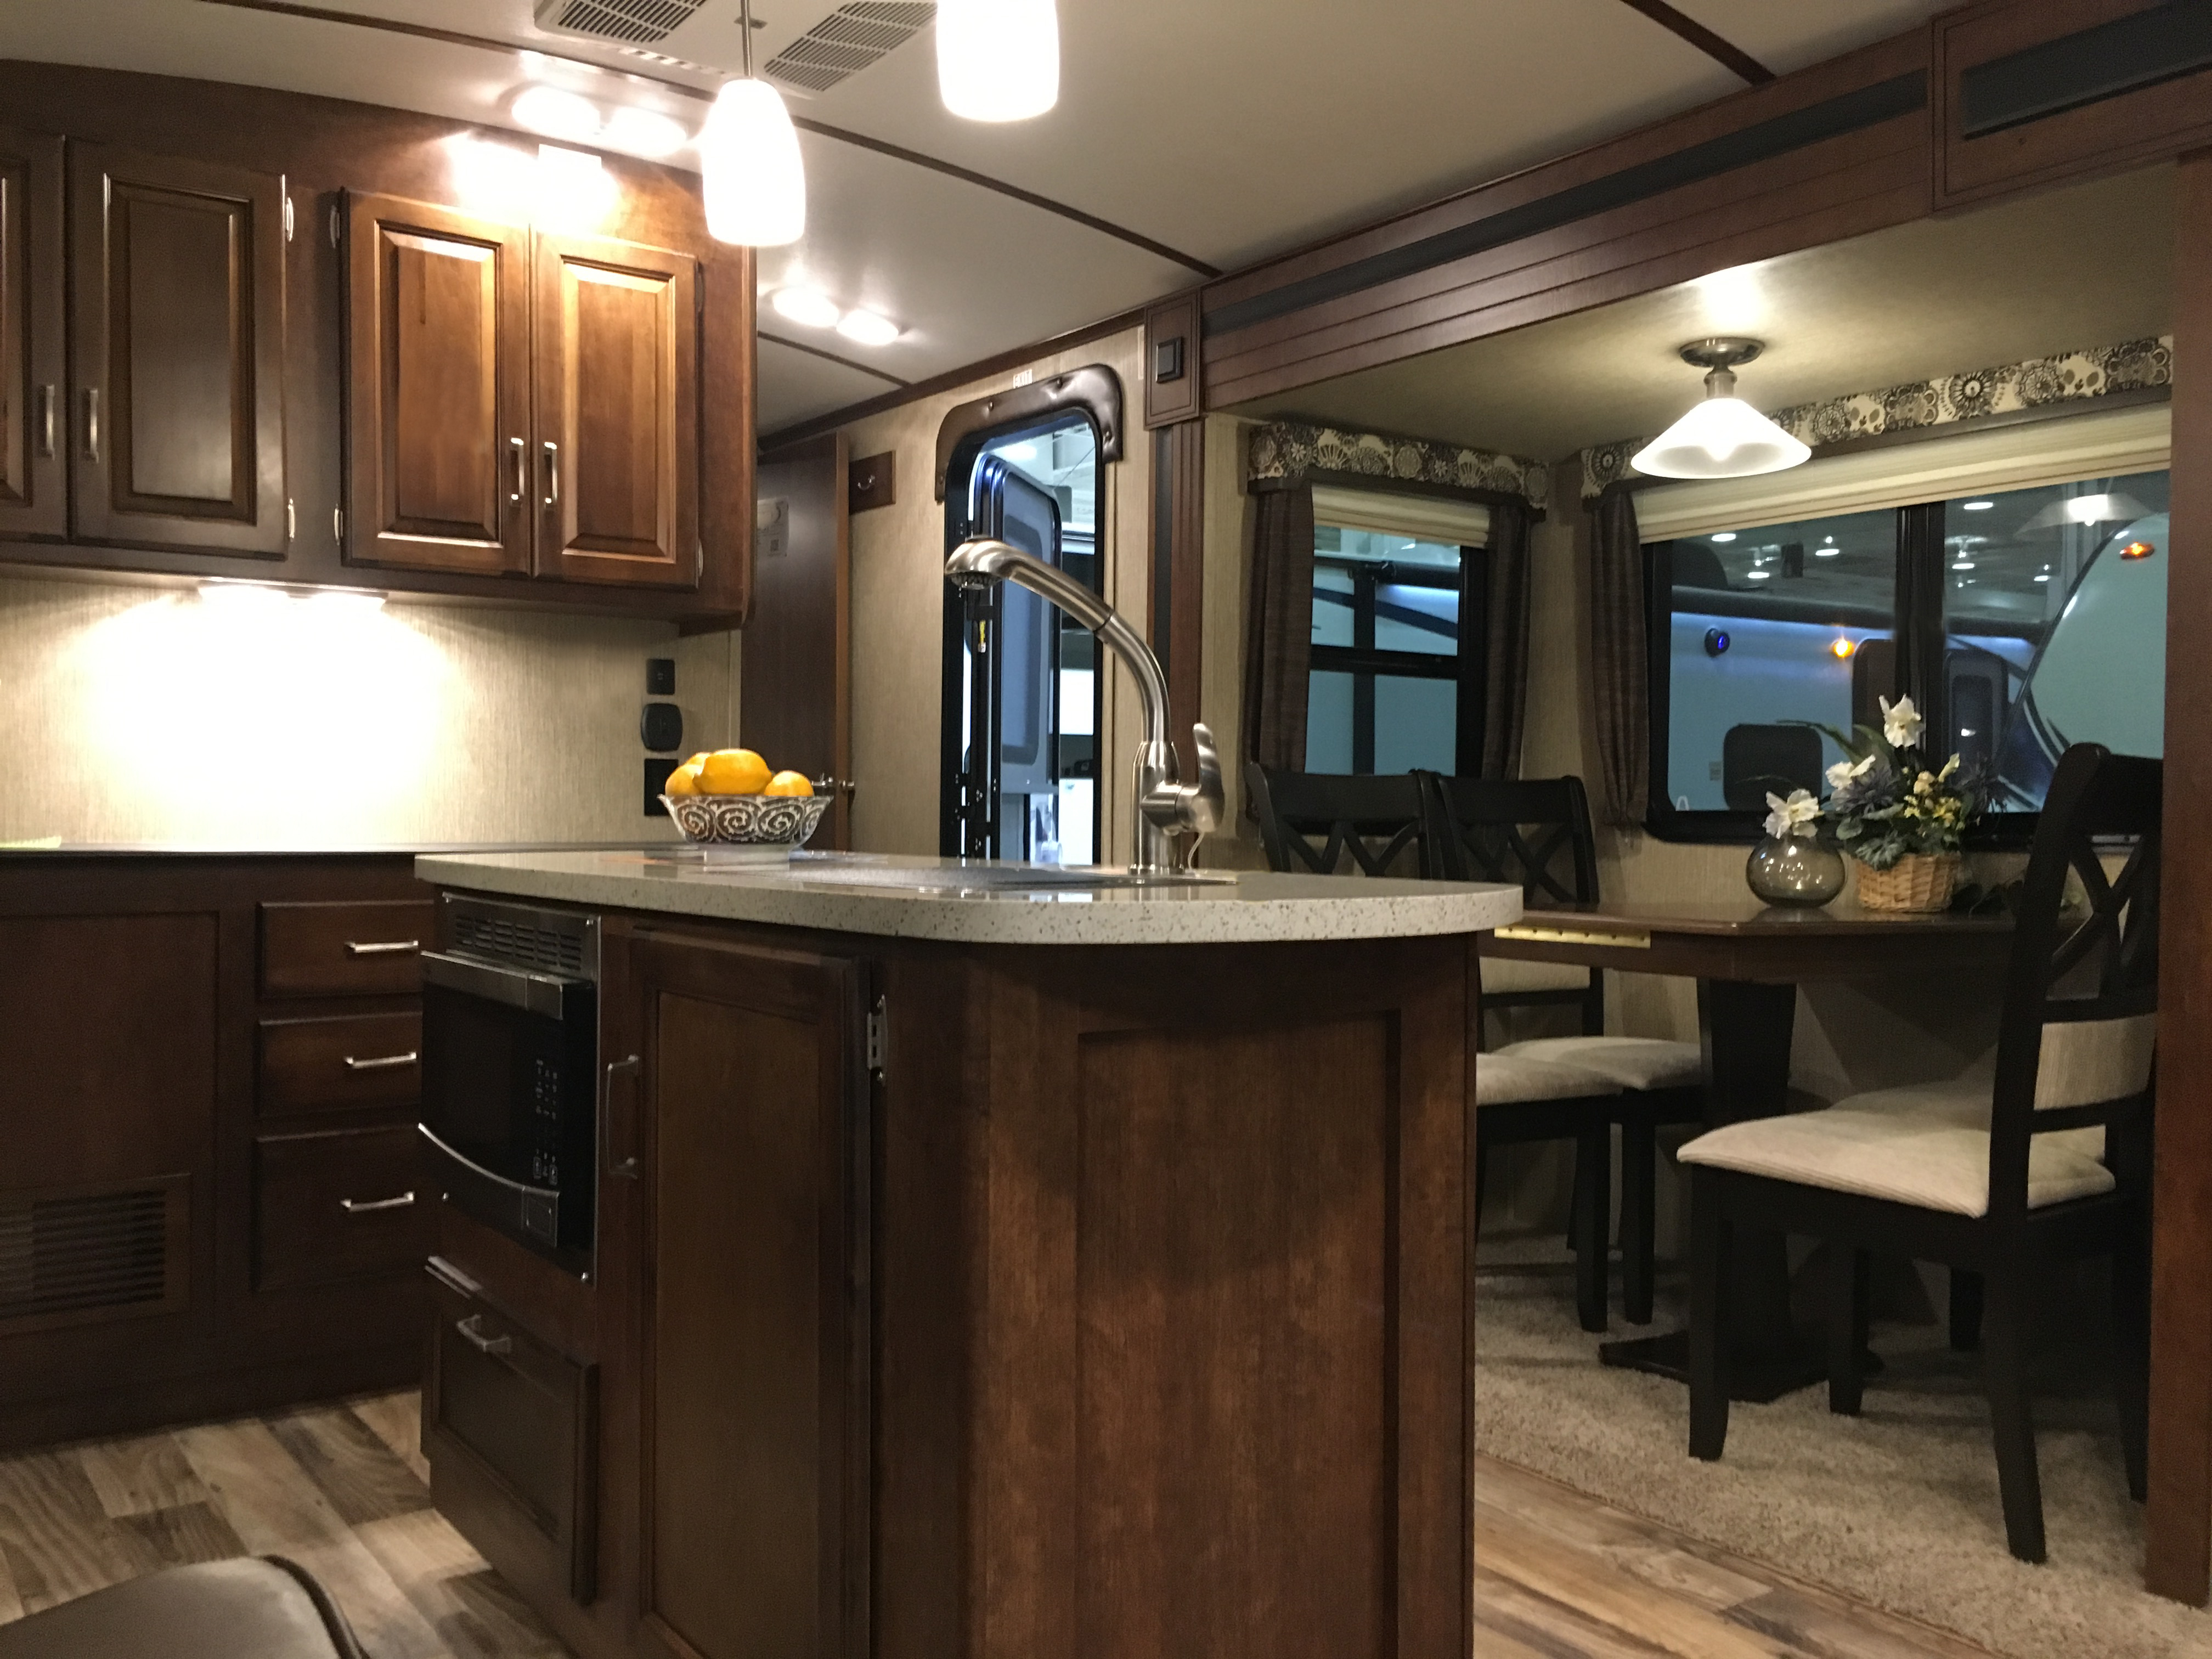 Spacious, fully functional kitchen and dining area featuring a corian countertop with large, deep sink and a microwave. Dining seating for 4 with large picturesque windows.. Keystone Outback 2017